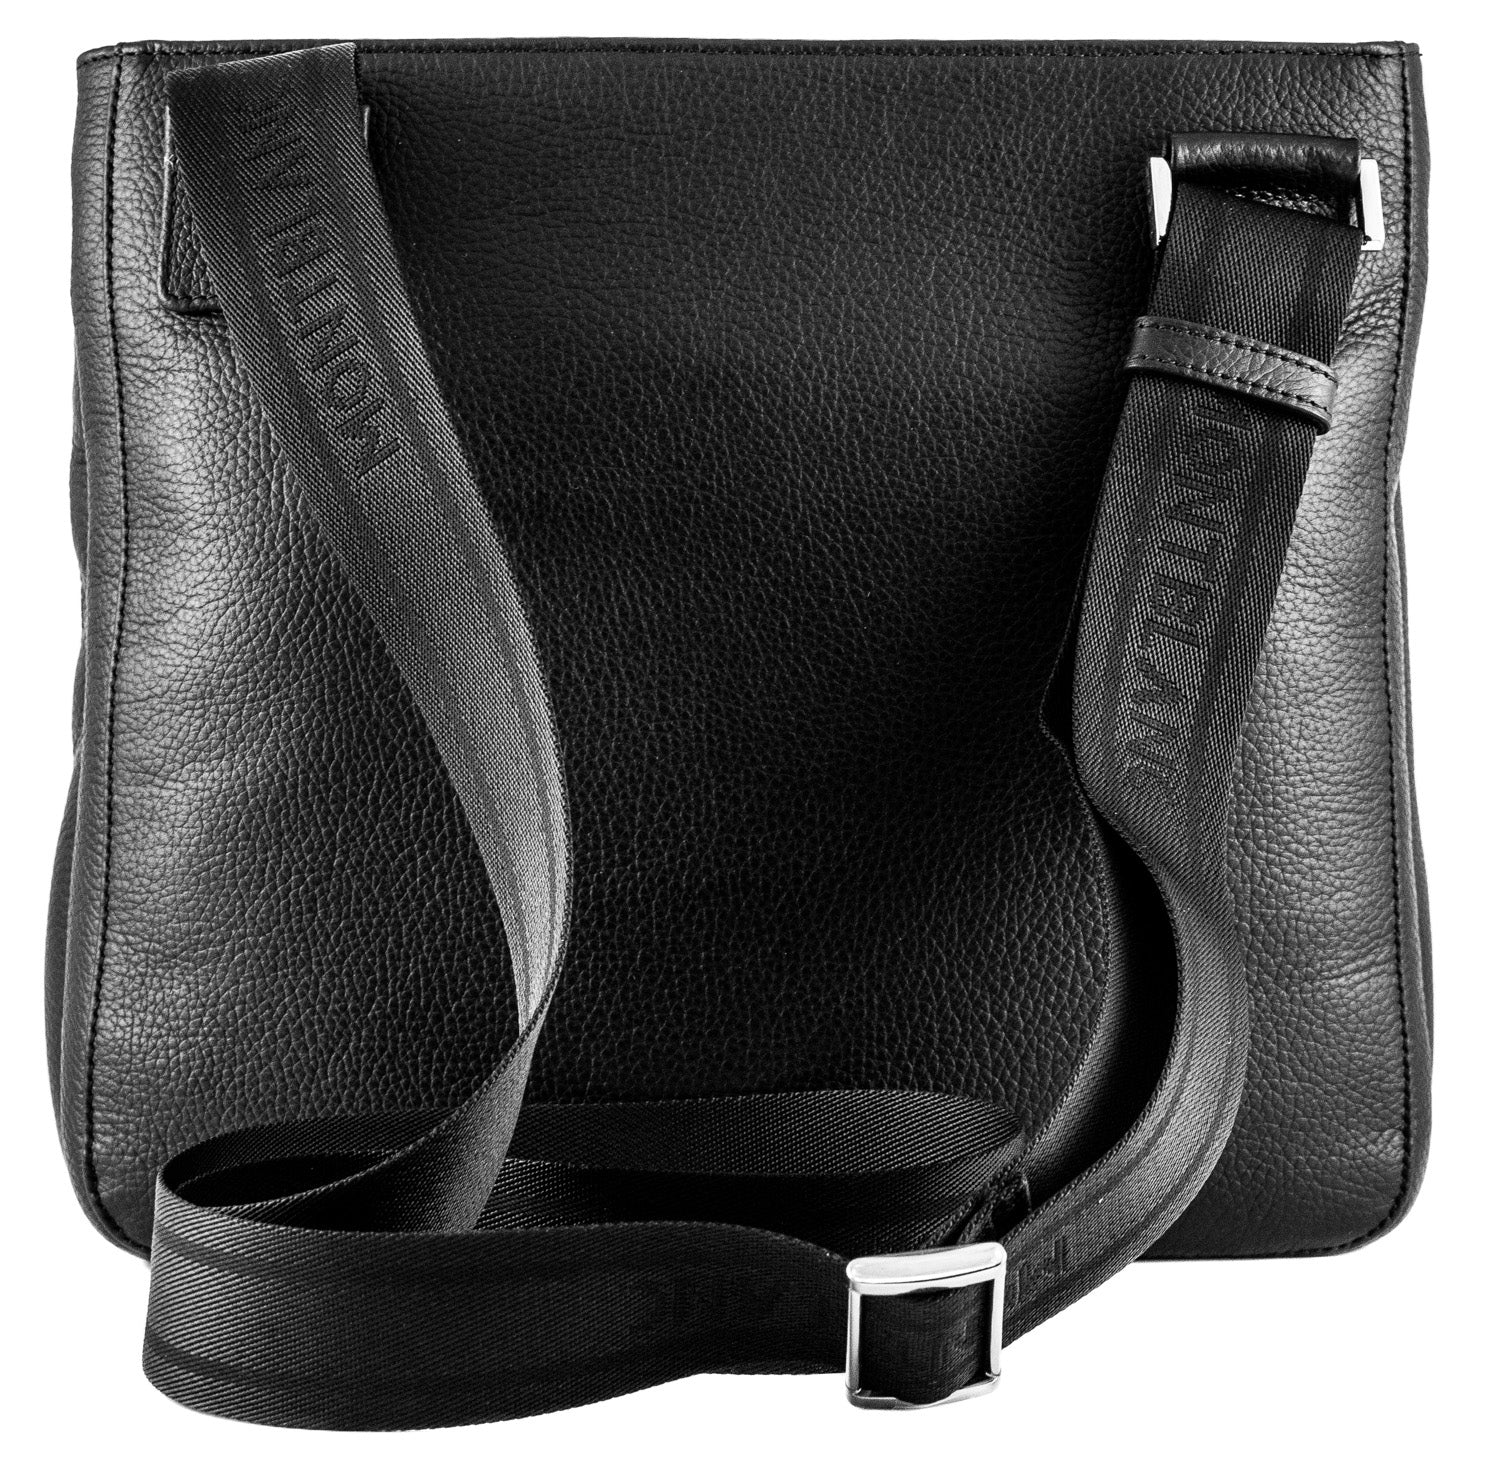 Montblanc 113790 Meisterstück Black Soft Grain Adj. Strap Envelope Bag